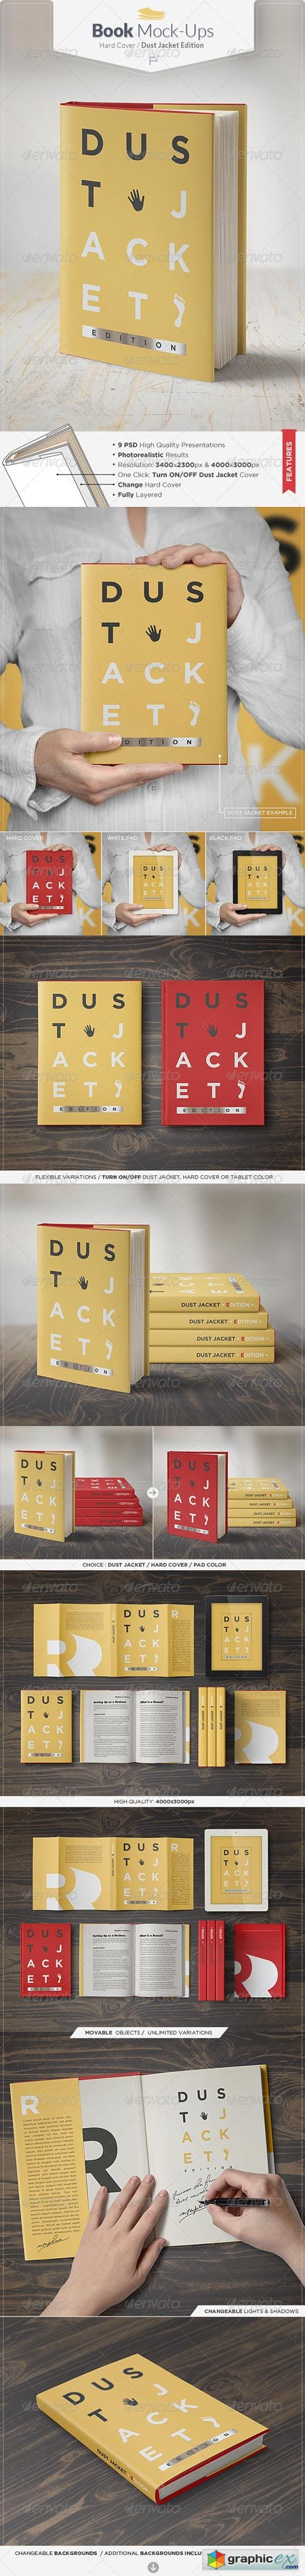 Book Mock-Up Dust Jacket Edition 7735188